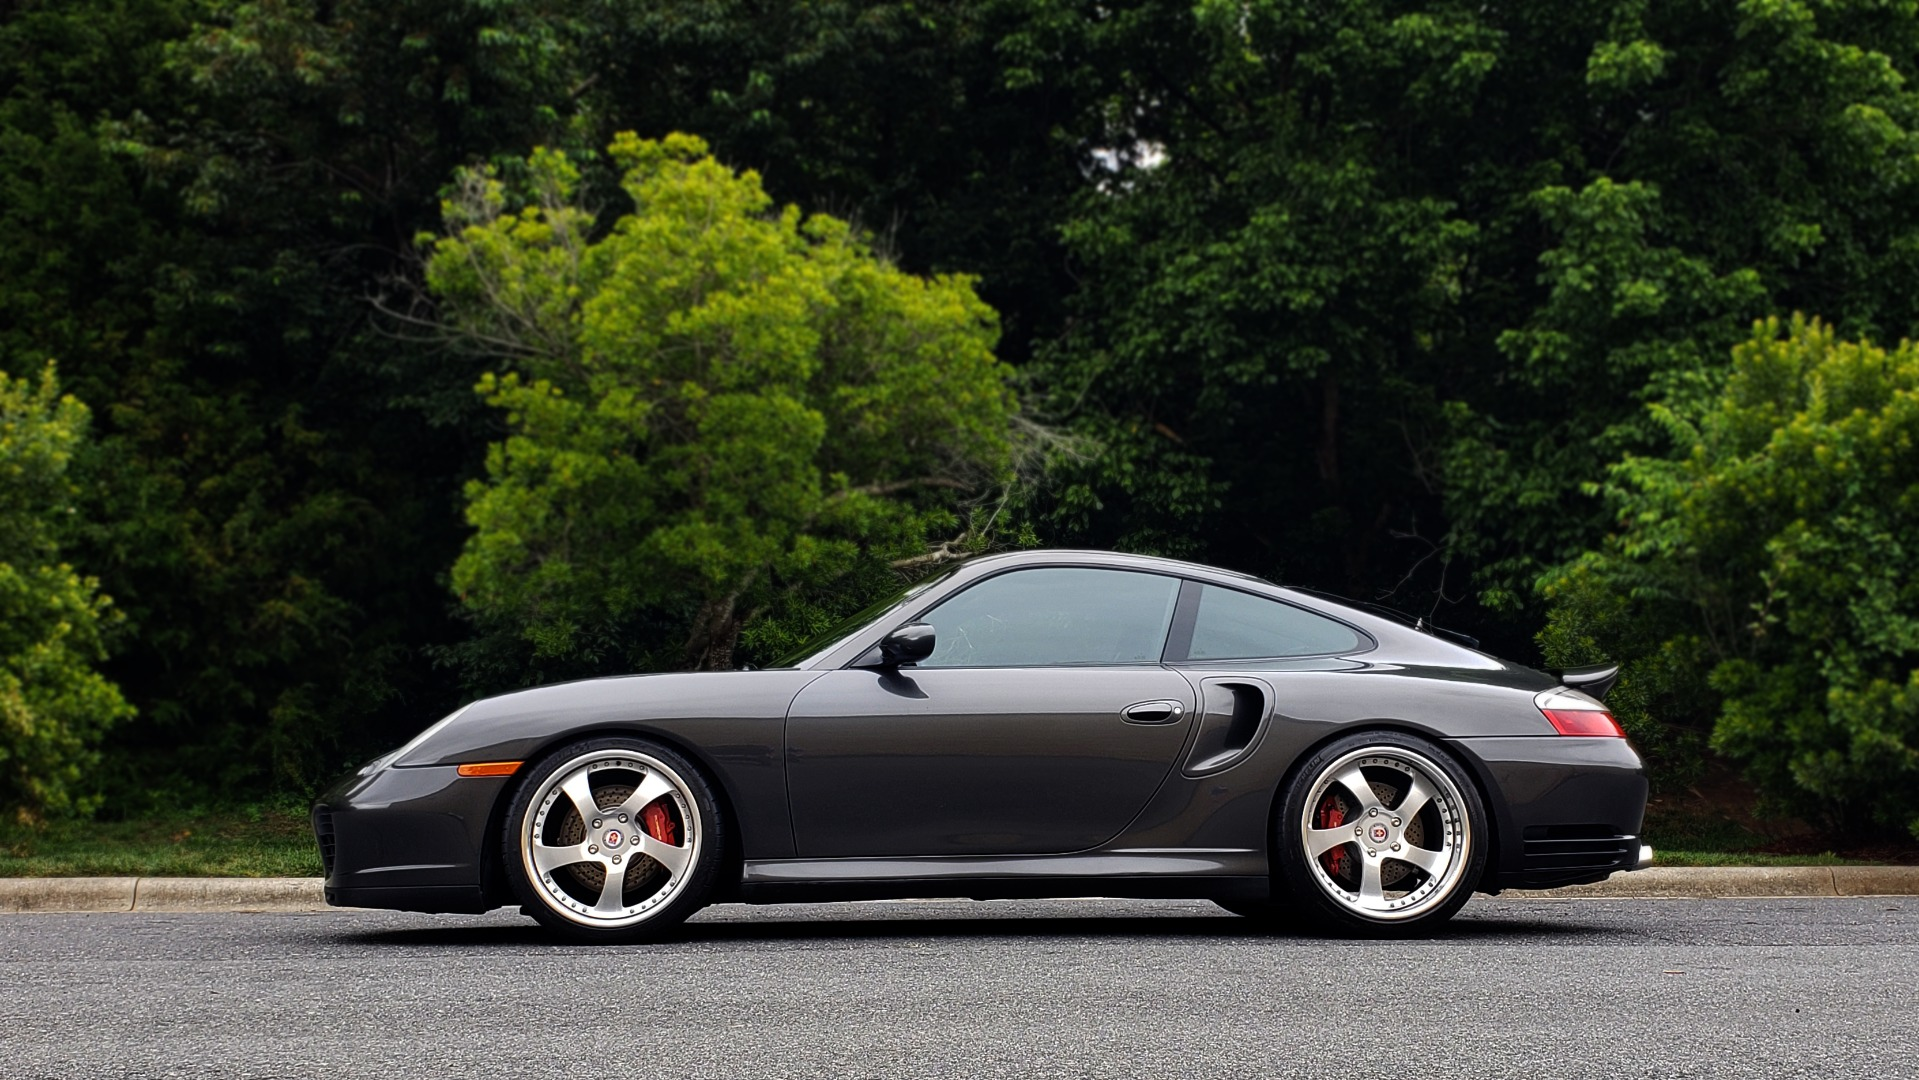 Used 2002 Porsche 911 CARRERA TURBO / 6-SPD MAN / ALPINE / BOSE / PERF UPGRADES for sale $53,995 at Formula Imports in Charlotte NC 28227 4